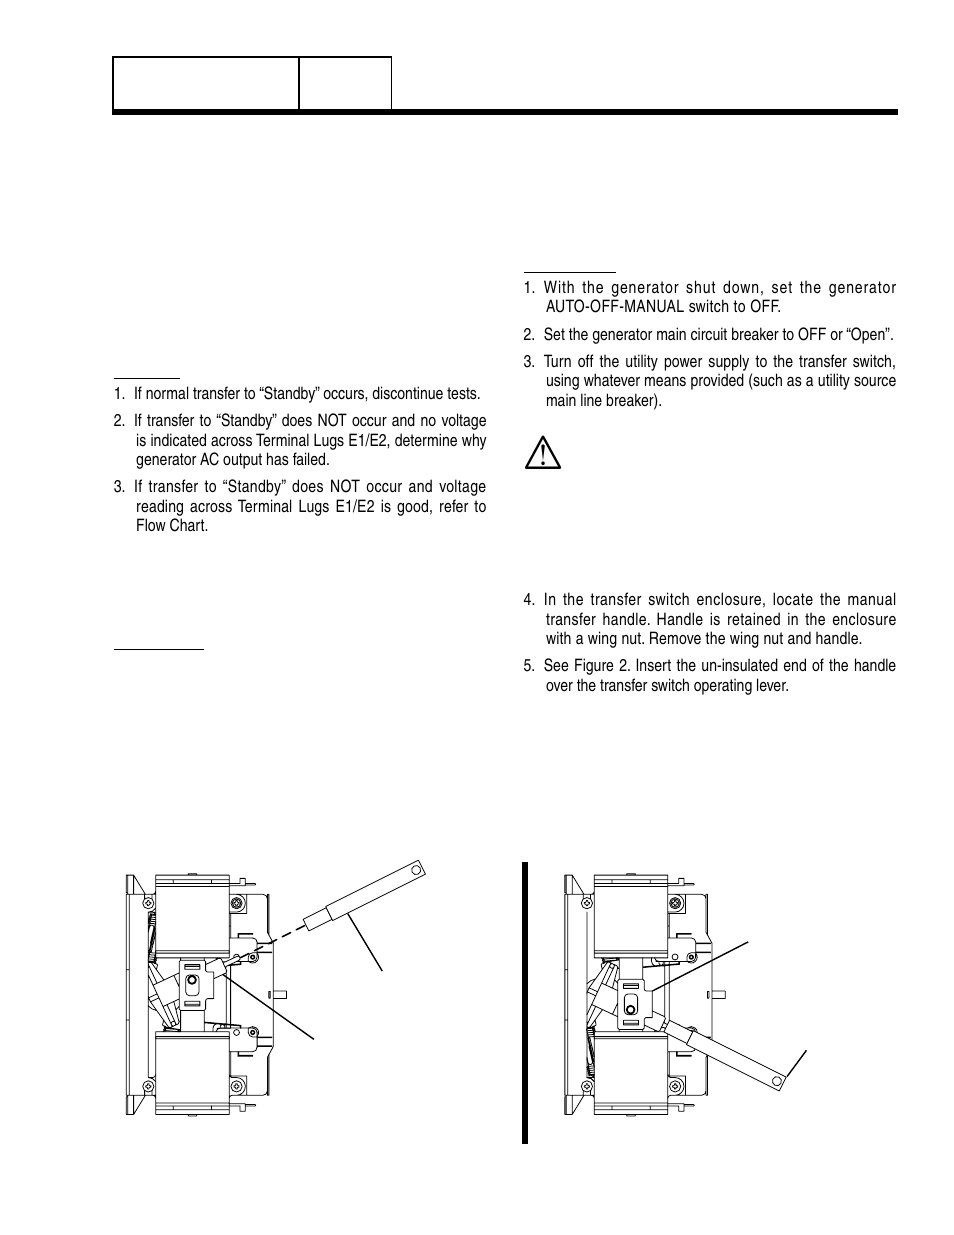 Test 27 – check manual transfer switchoperation | Generac Power Systems 8 kW  LP User Manual | Page 77 / 192